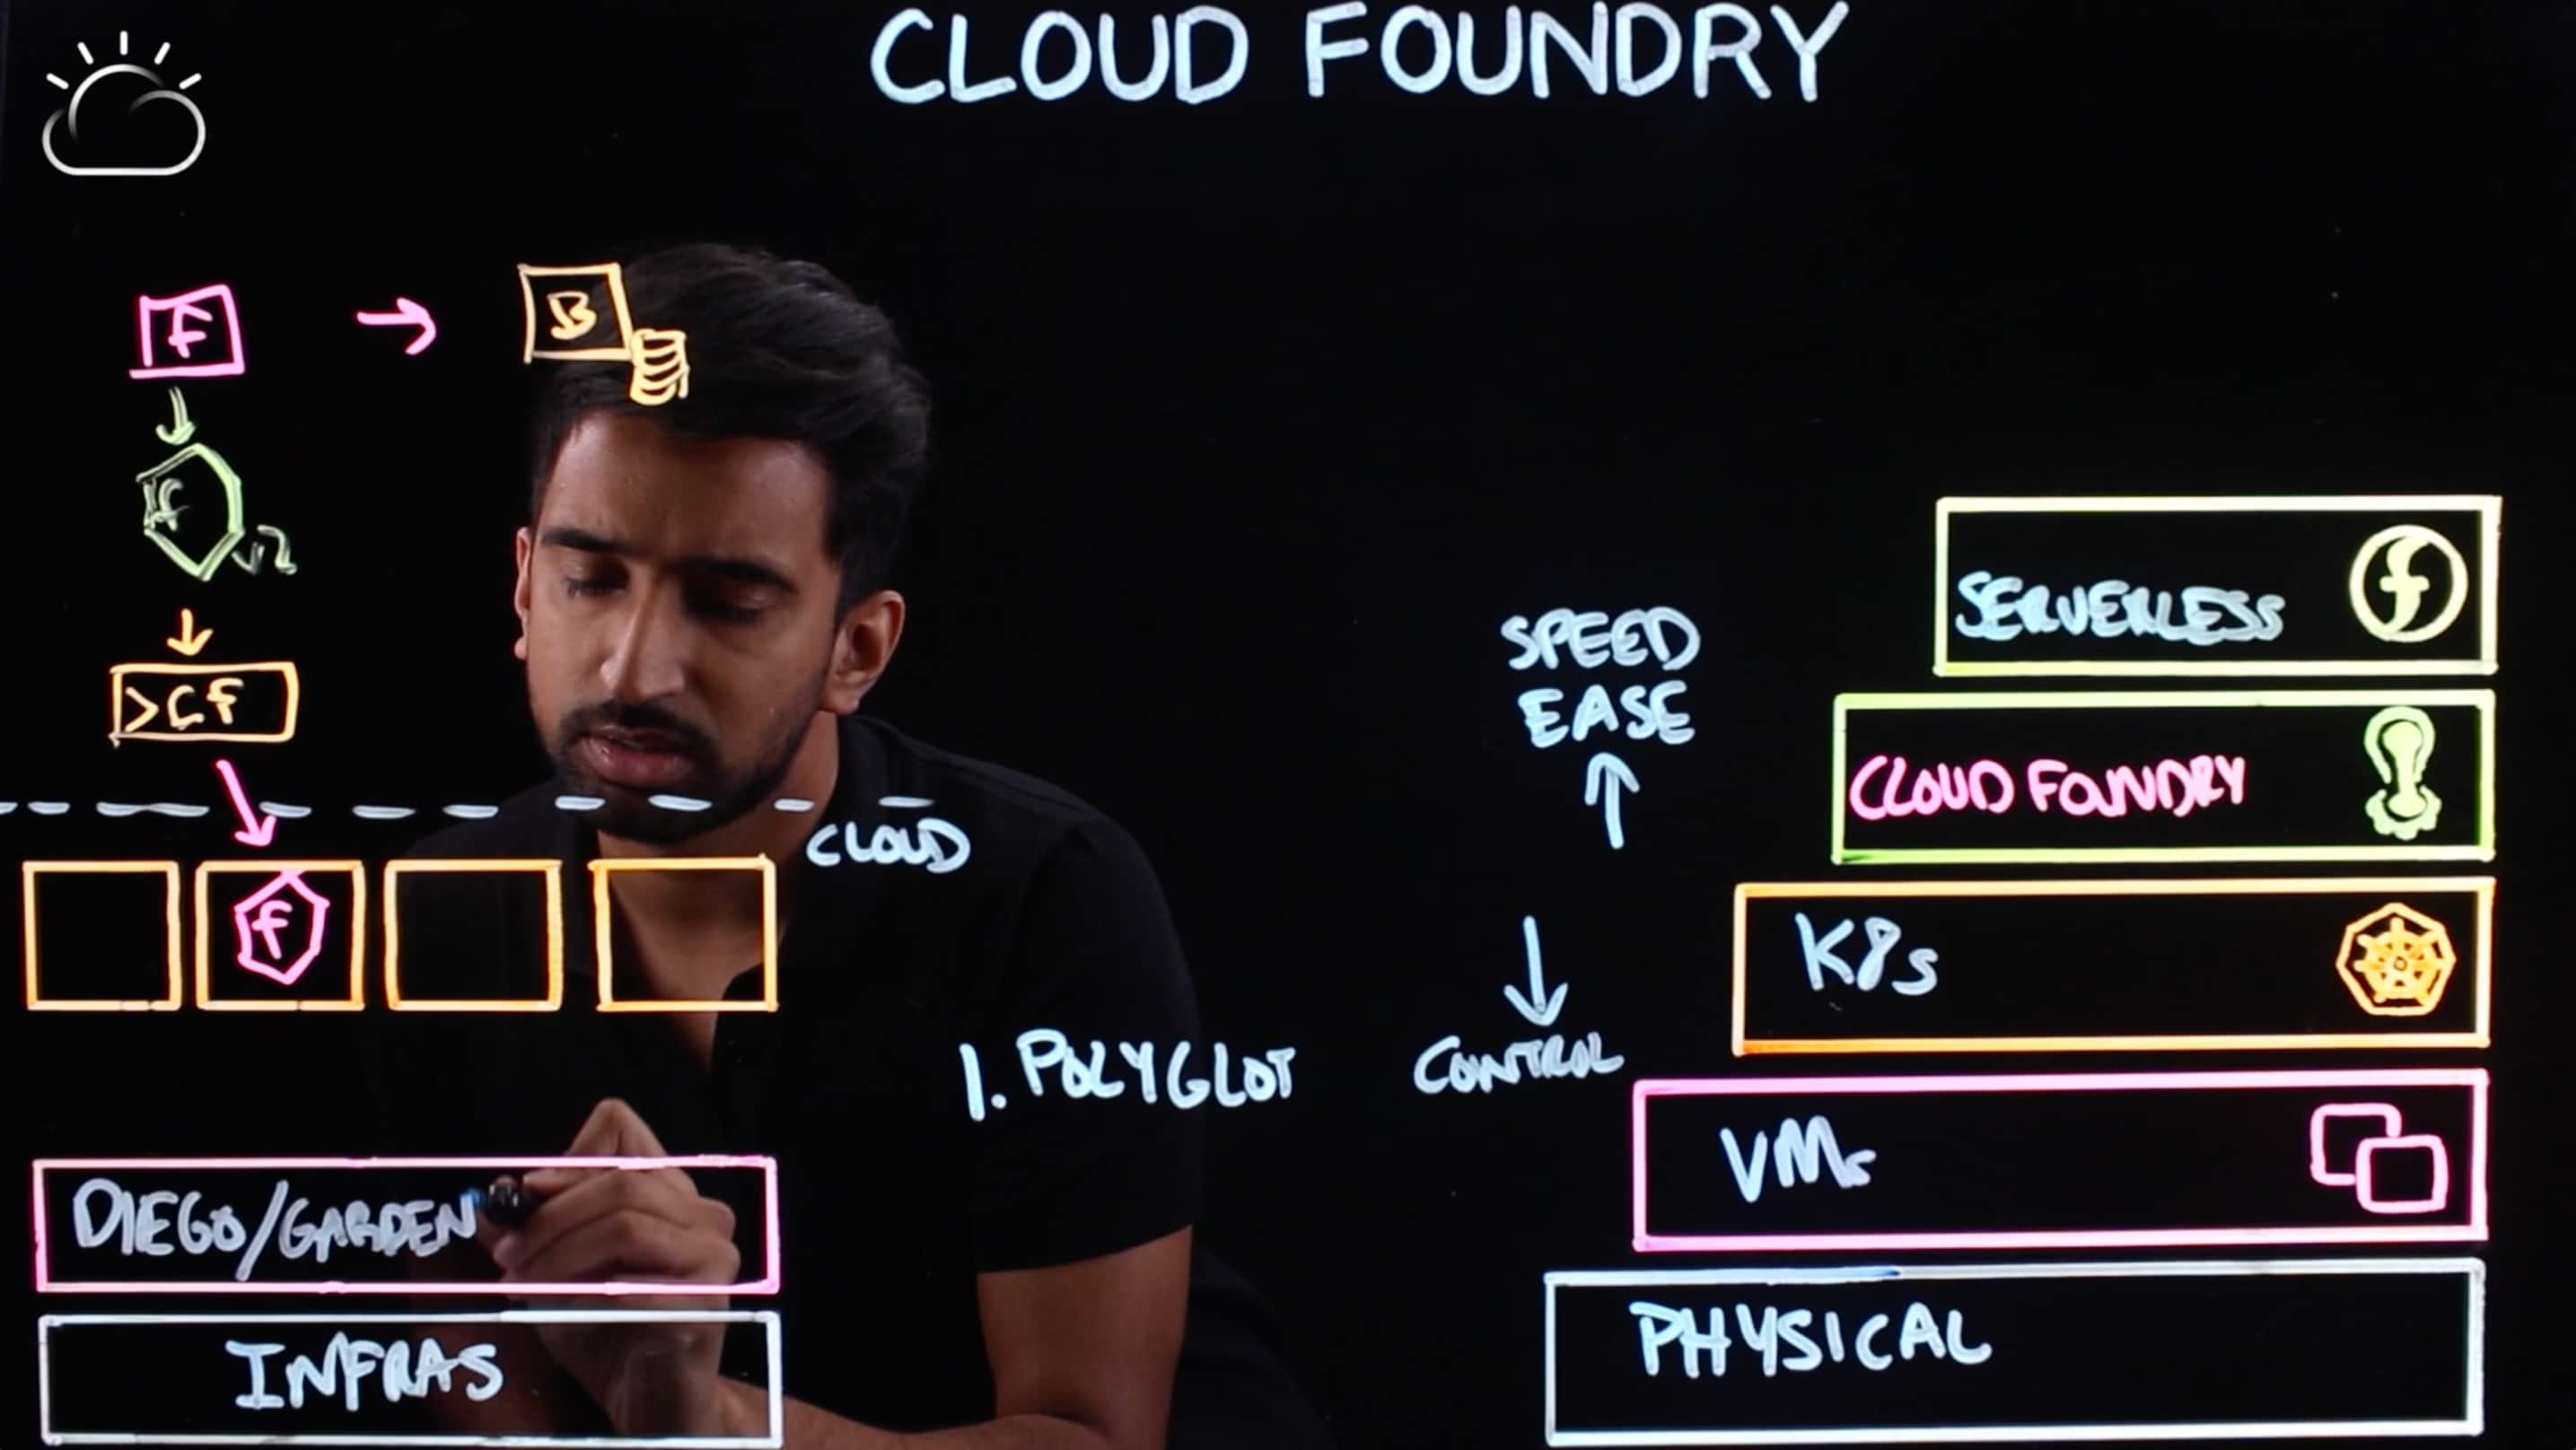 So here, we have Diego the Cloud Foundry tech, as well as Garden, which is remarkably similar to something like Docker or container runtimes. It's the container technology that Cloud Foundry used long before Docker was popular, back in 2011.